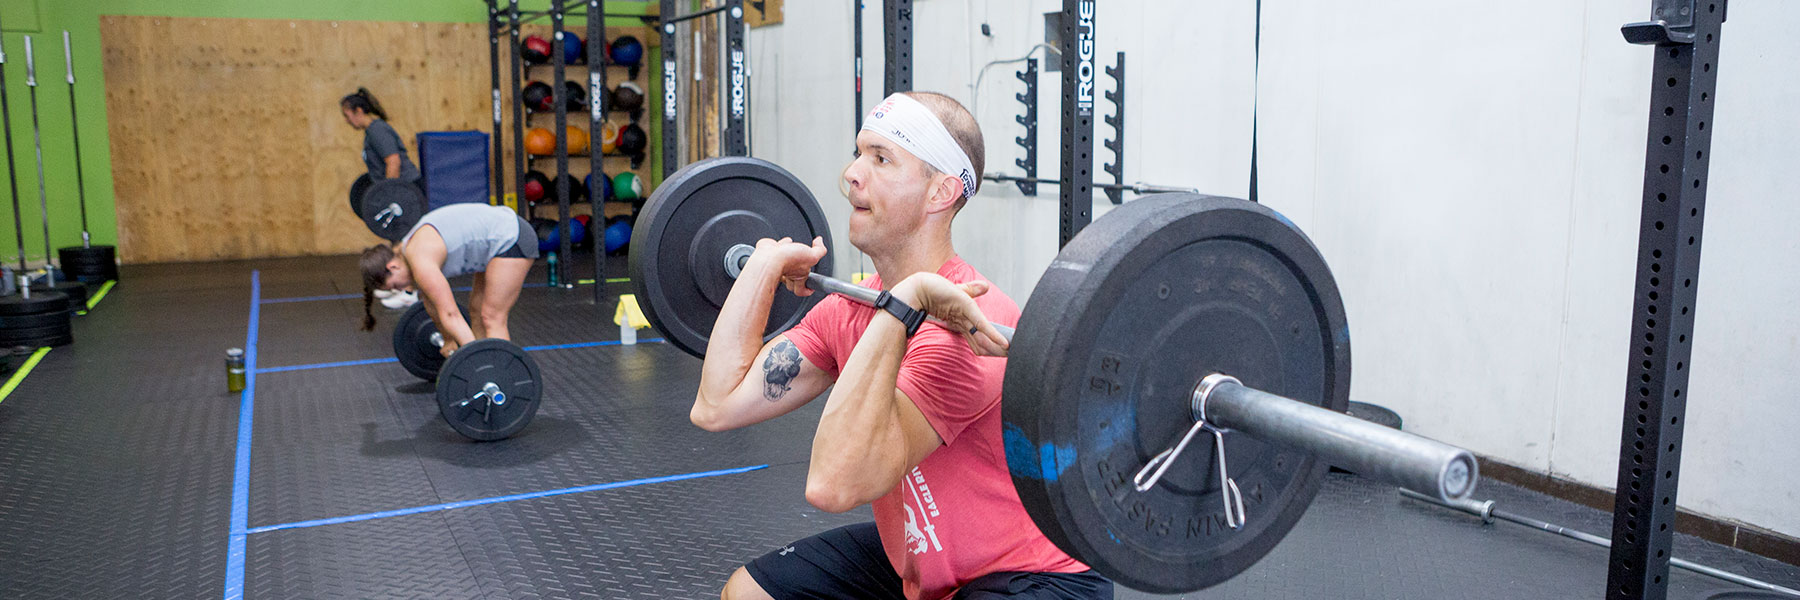 Class cleans barbells at CrossFit Iron Refined in Eagle River Alaska